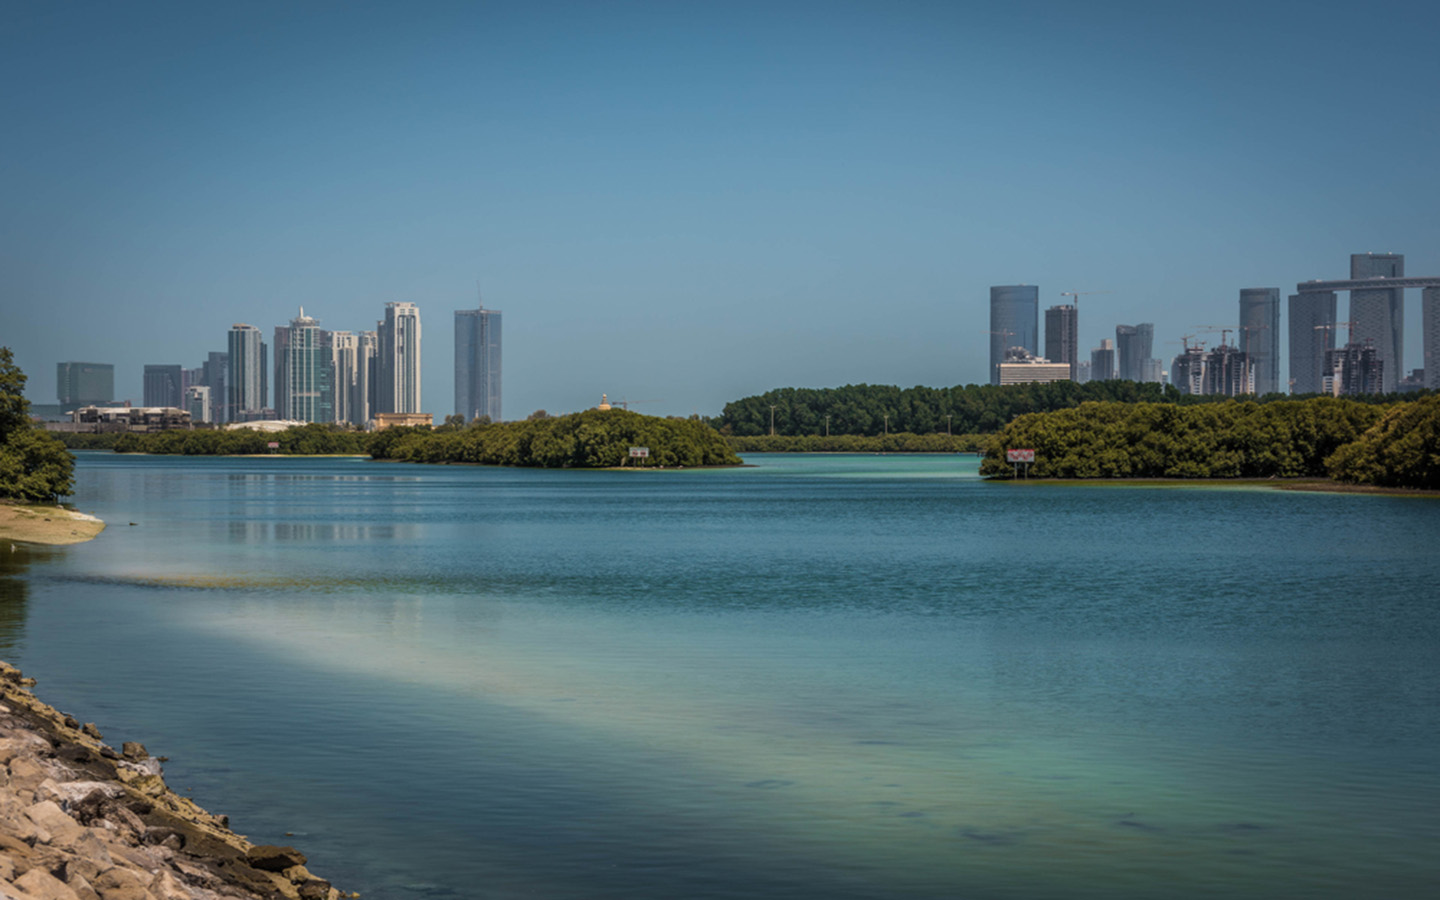 Eastern Mangroves - a place for fishing in Abu Dhabi